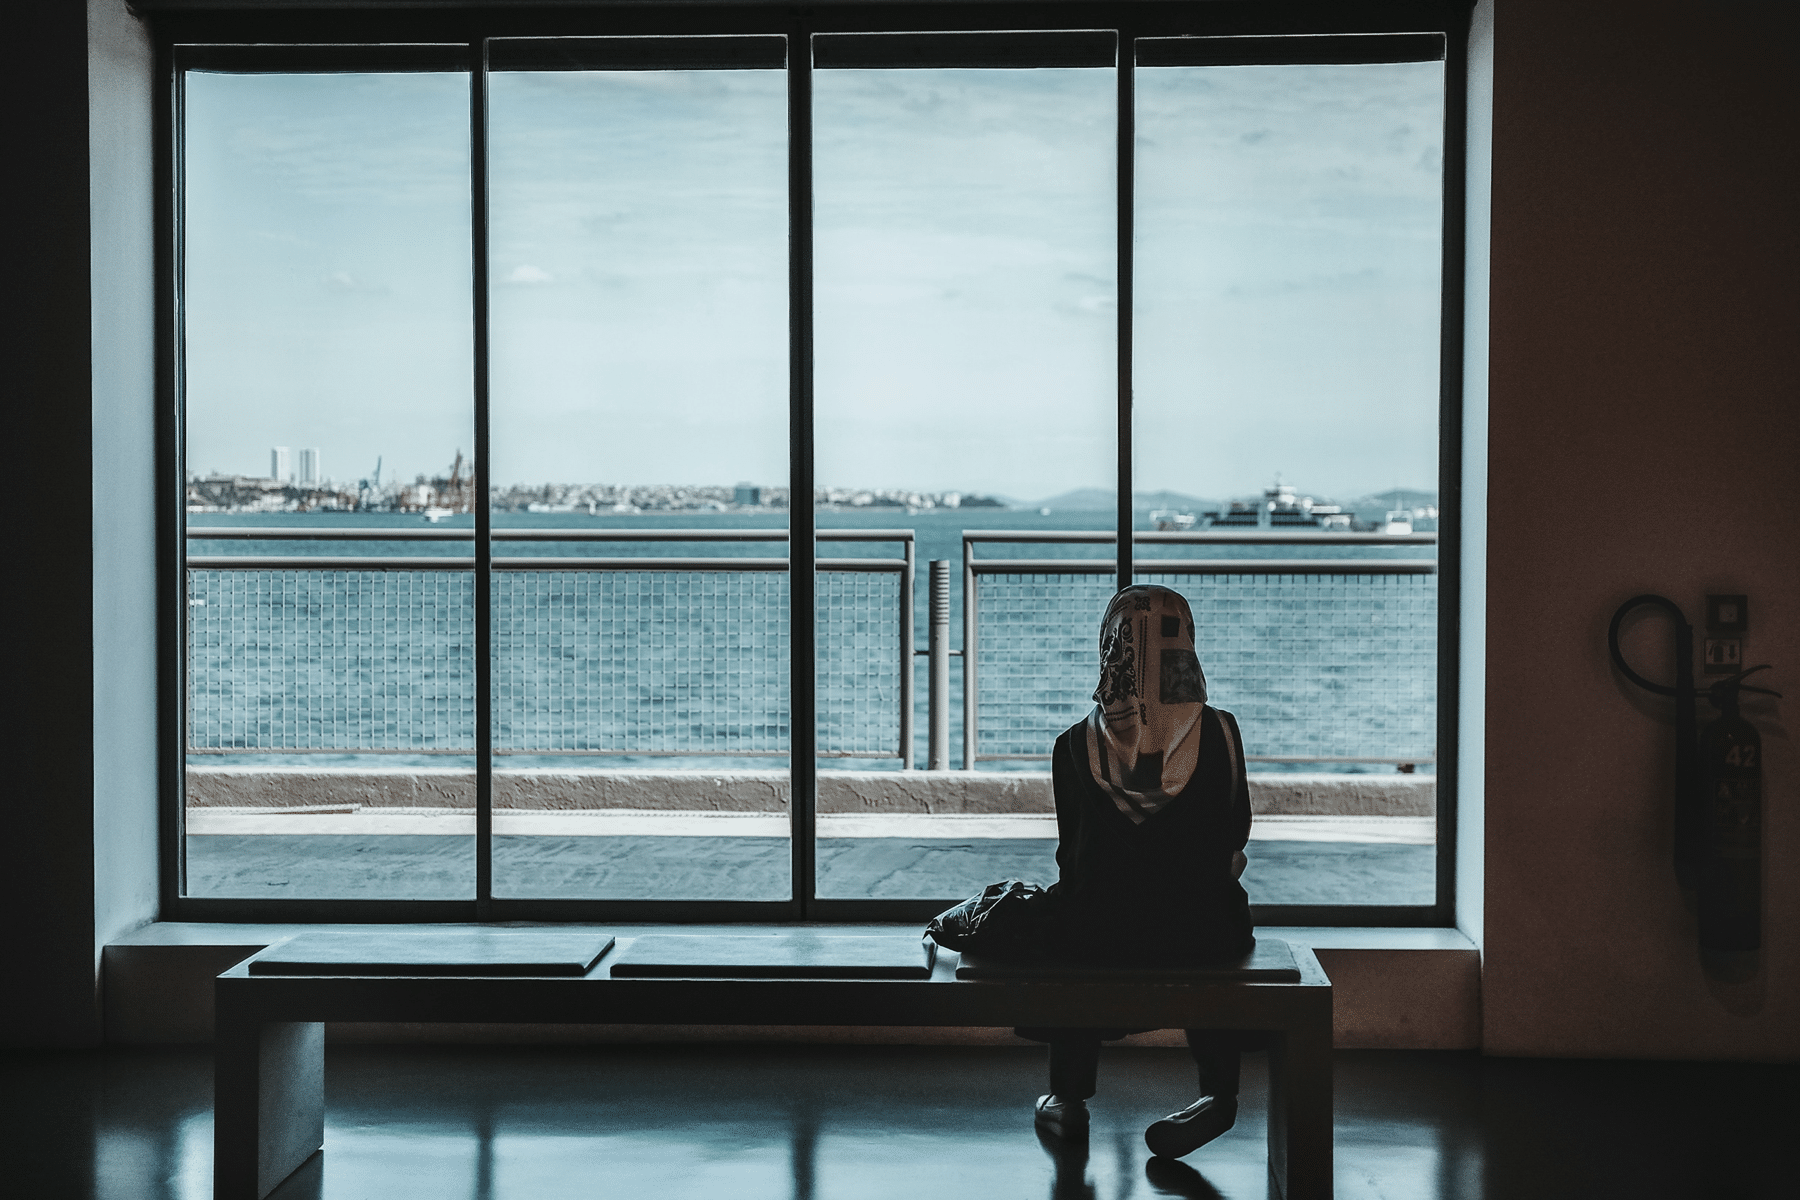 Woman on bench in front of huge window